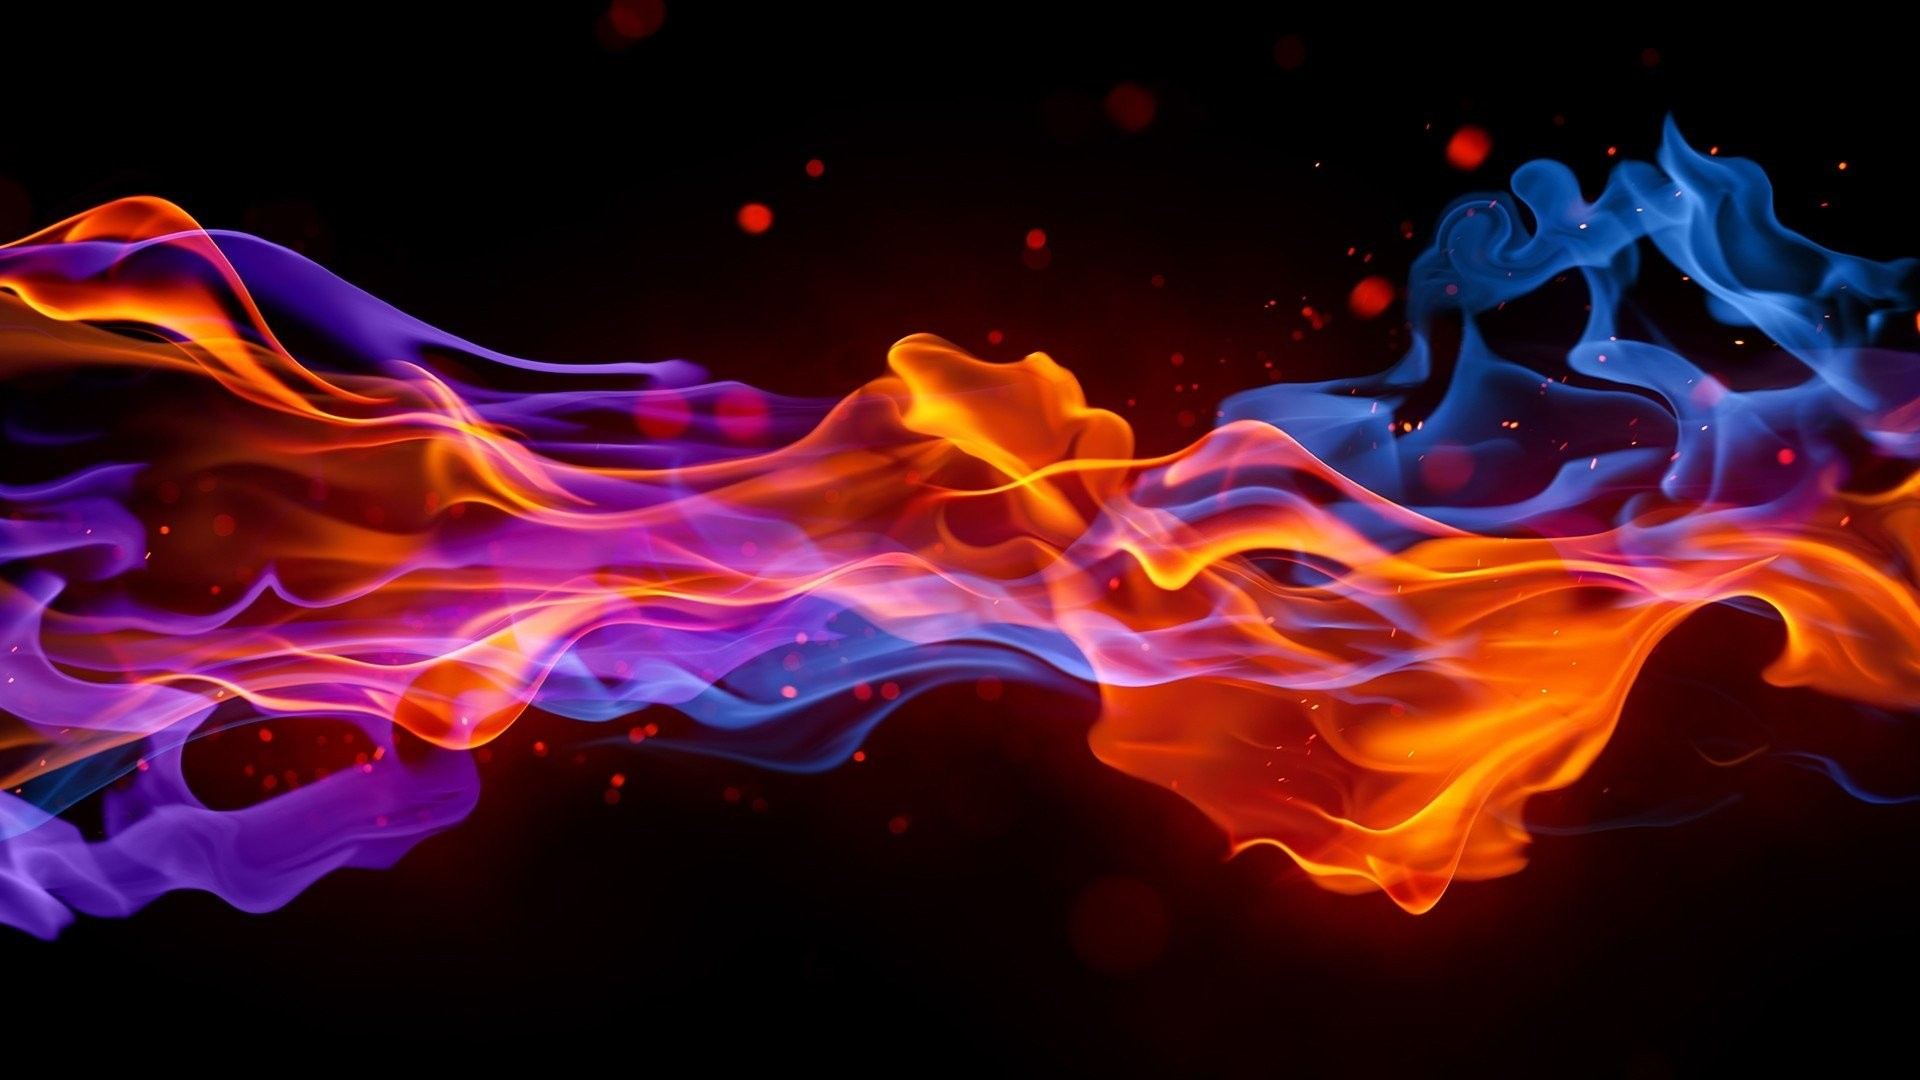 Abstract Black Background Fire